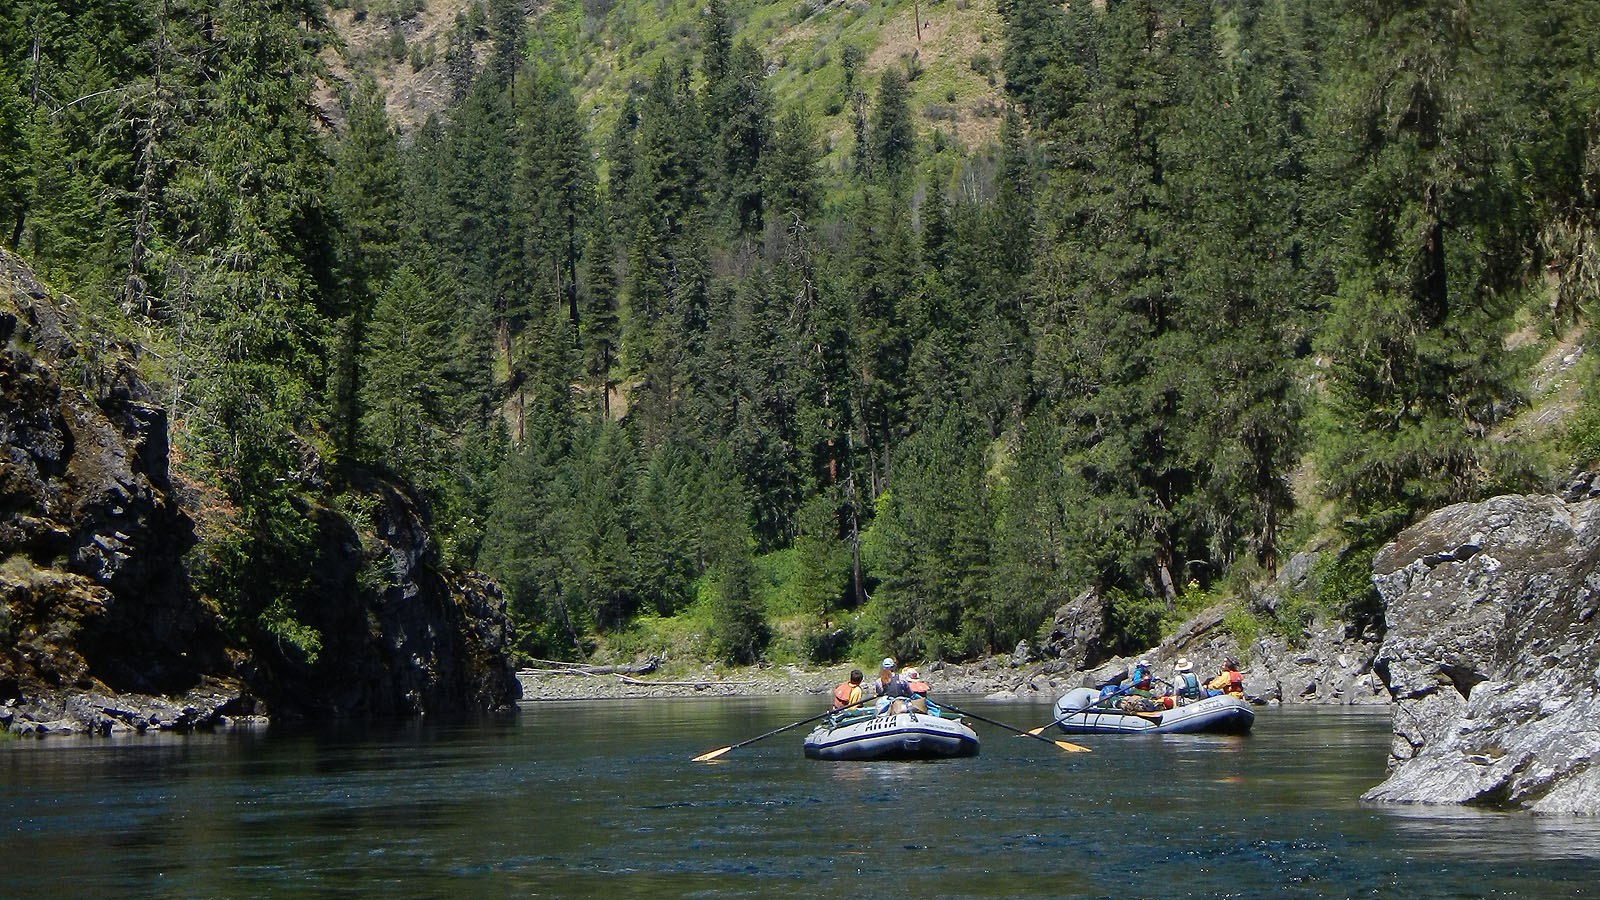 floating downstream on the Selway River in Idaho